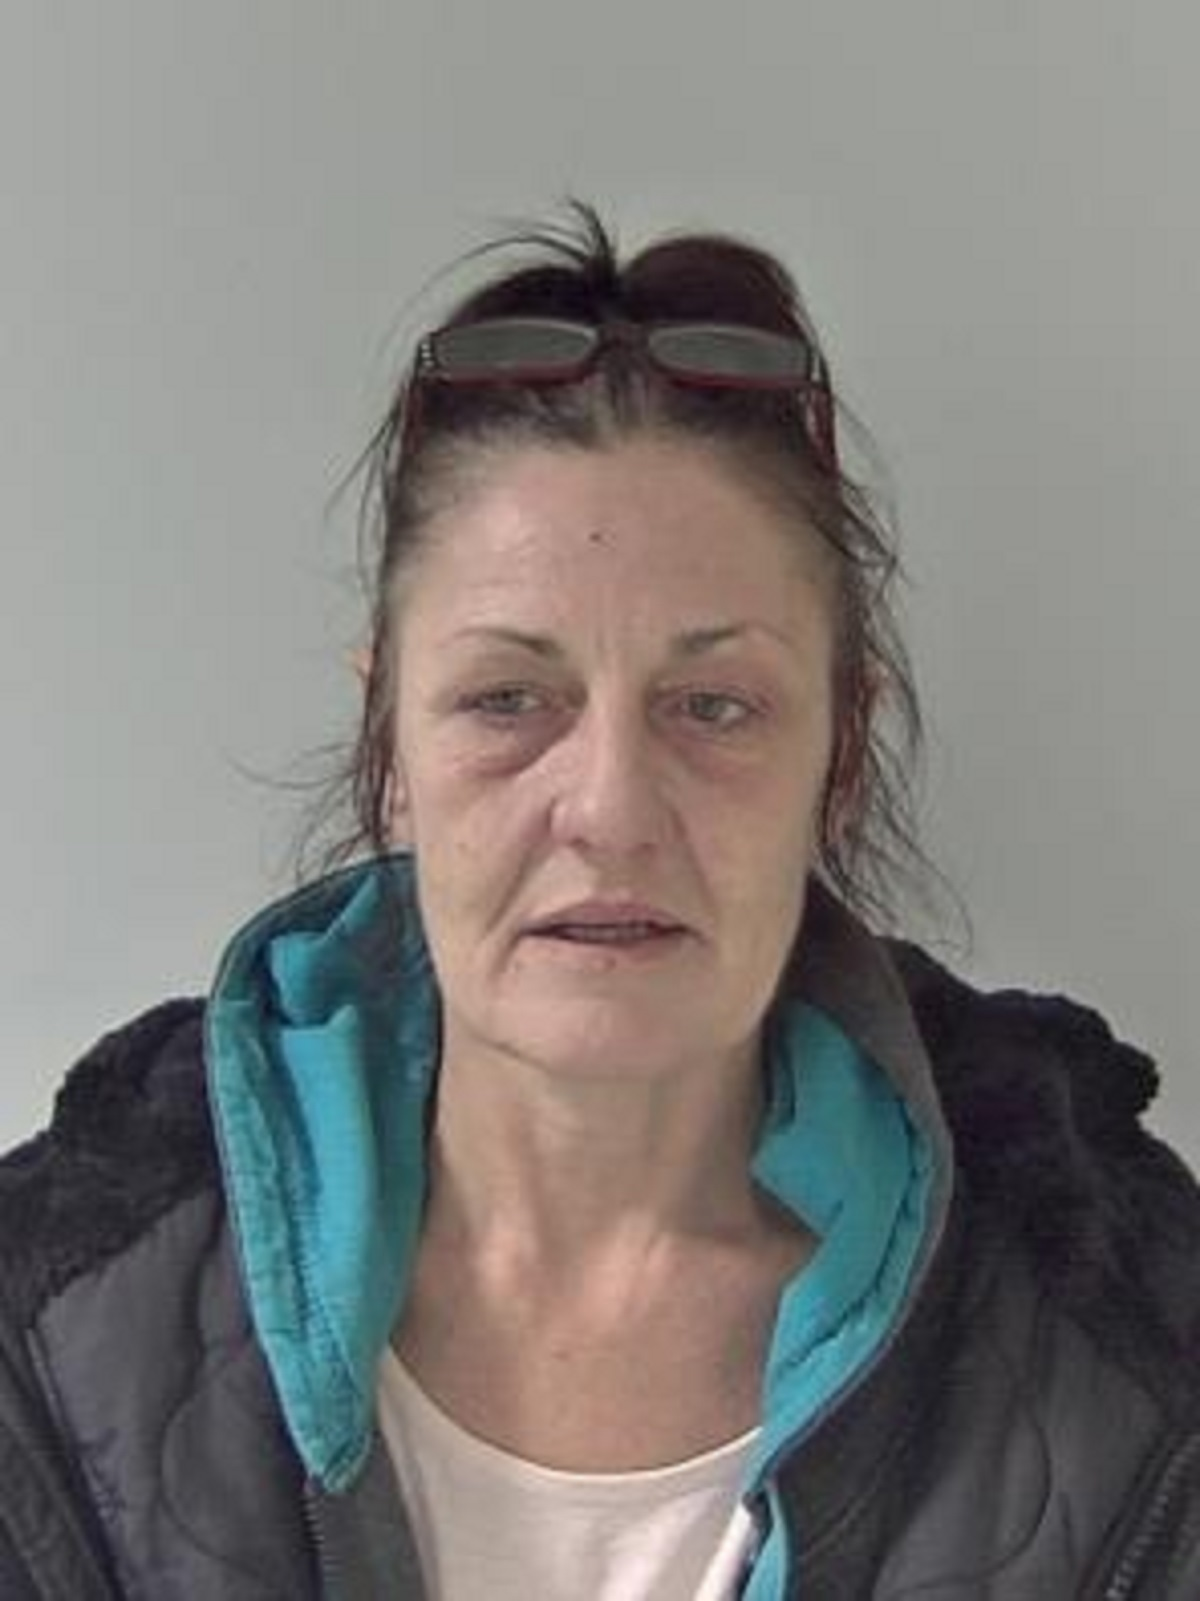 JAILED: Dawn Day. Photo: West Mercia Police